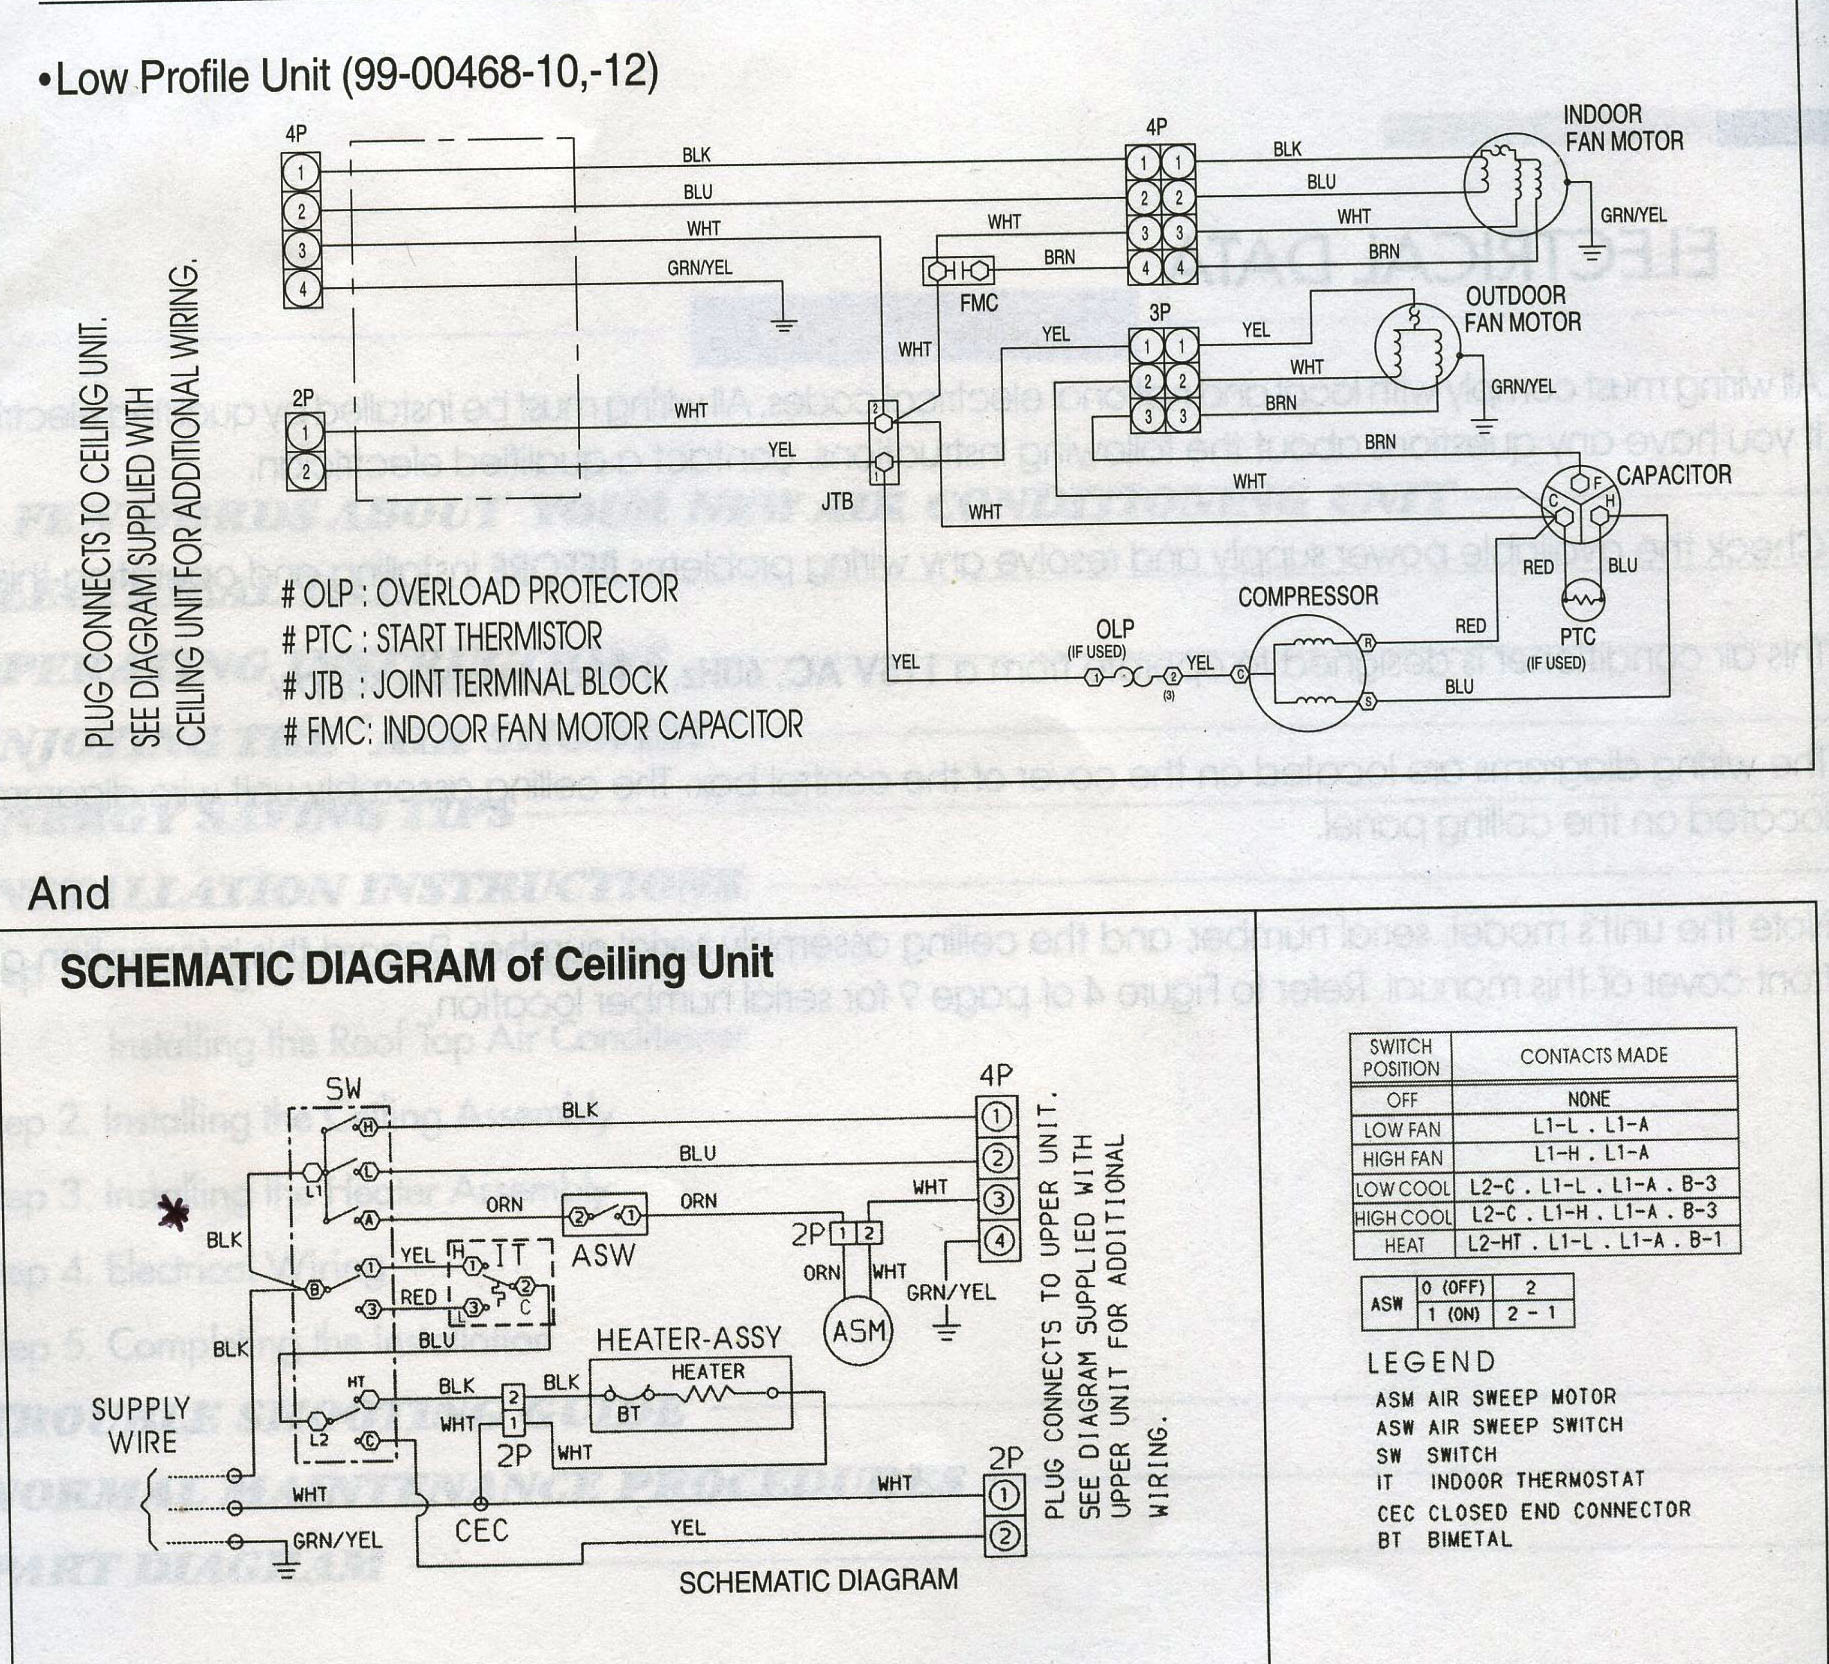 hight resolution of carrier bus ac wiring diagram get free image about wiring diagram carrier wiring diagrams 59sc5a100s21 20 carrier wiring diagrams furnaces